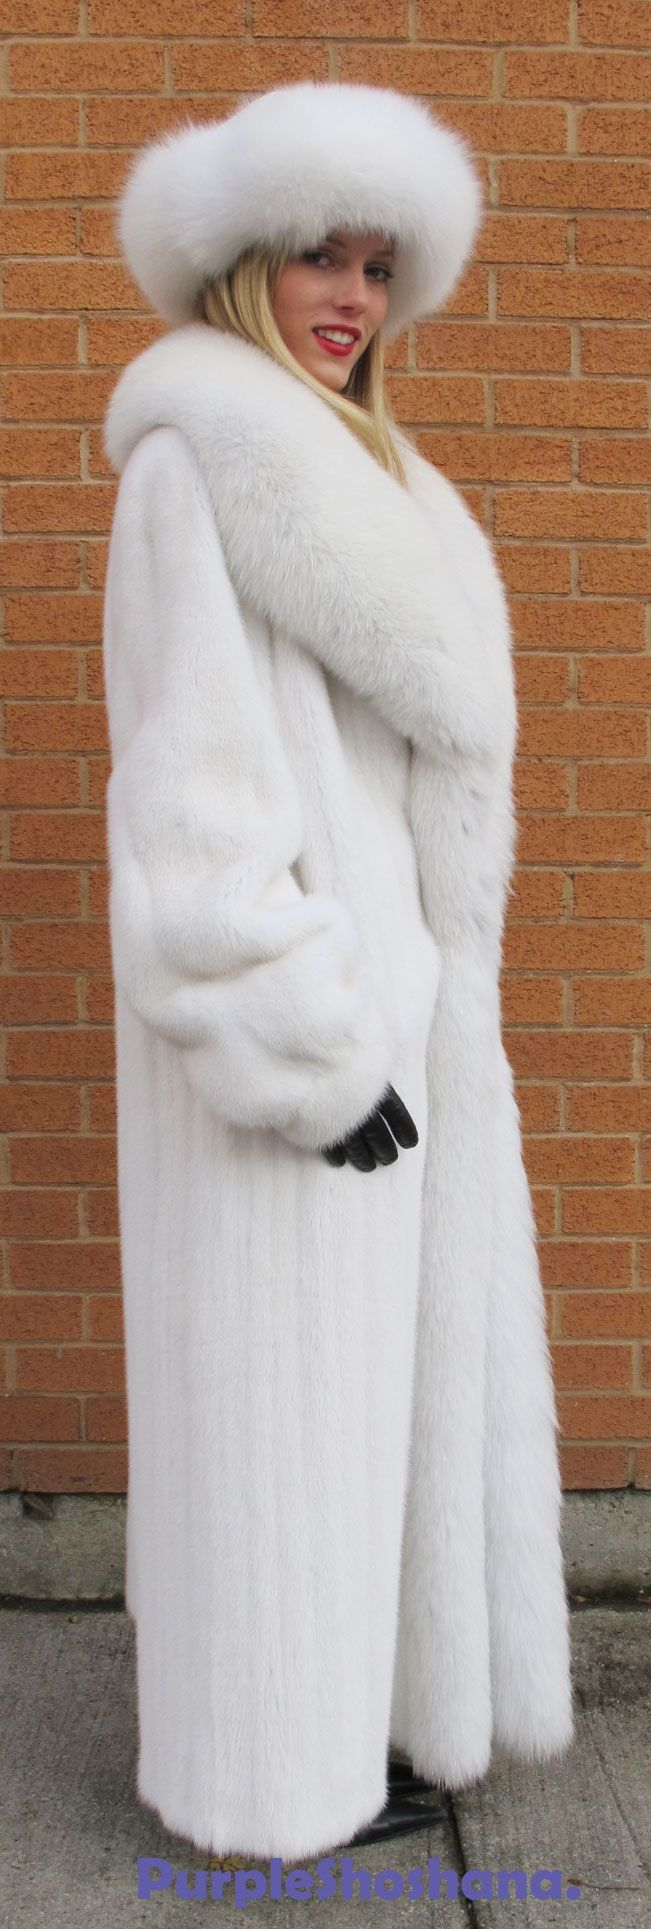 33  Beauty White Sable for White Sable Fur  76uhy